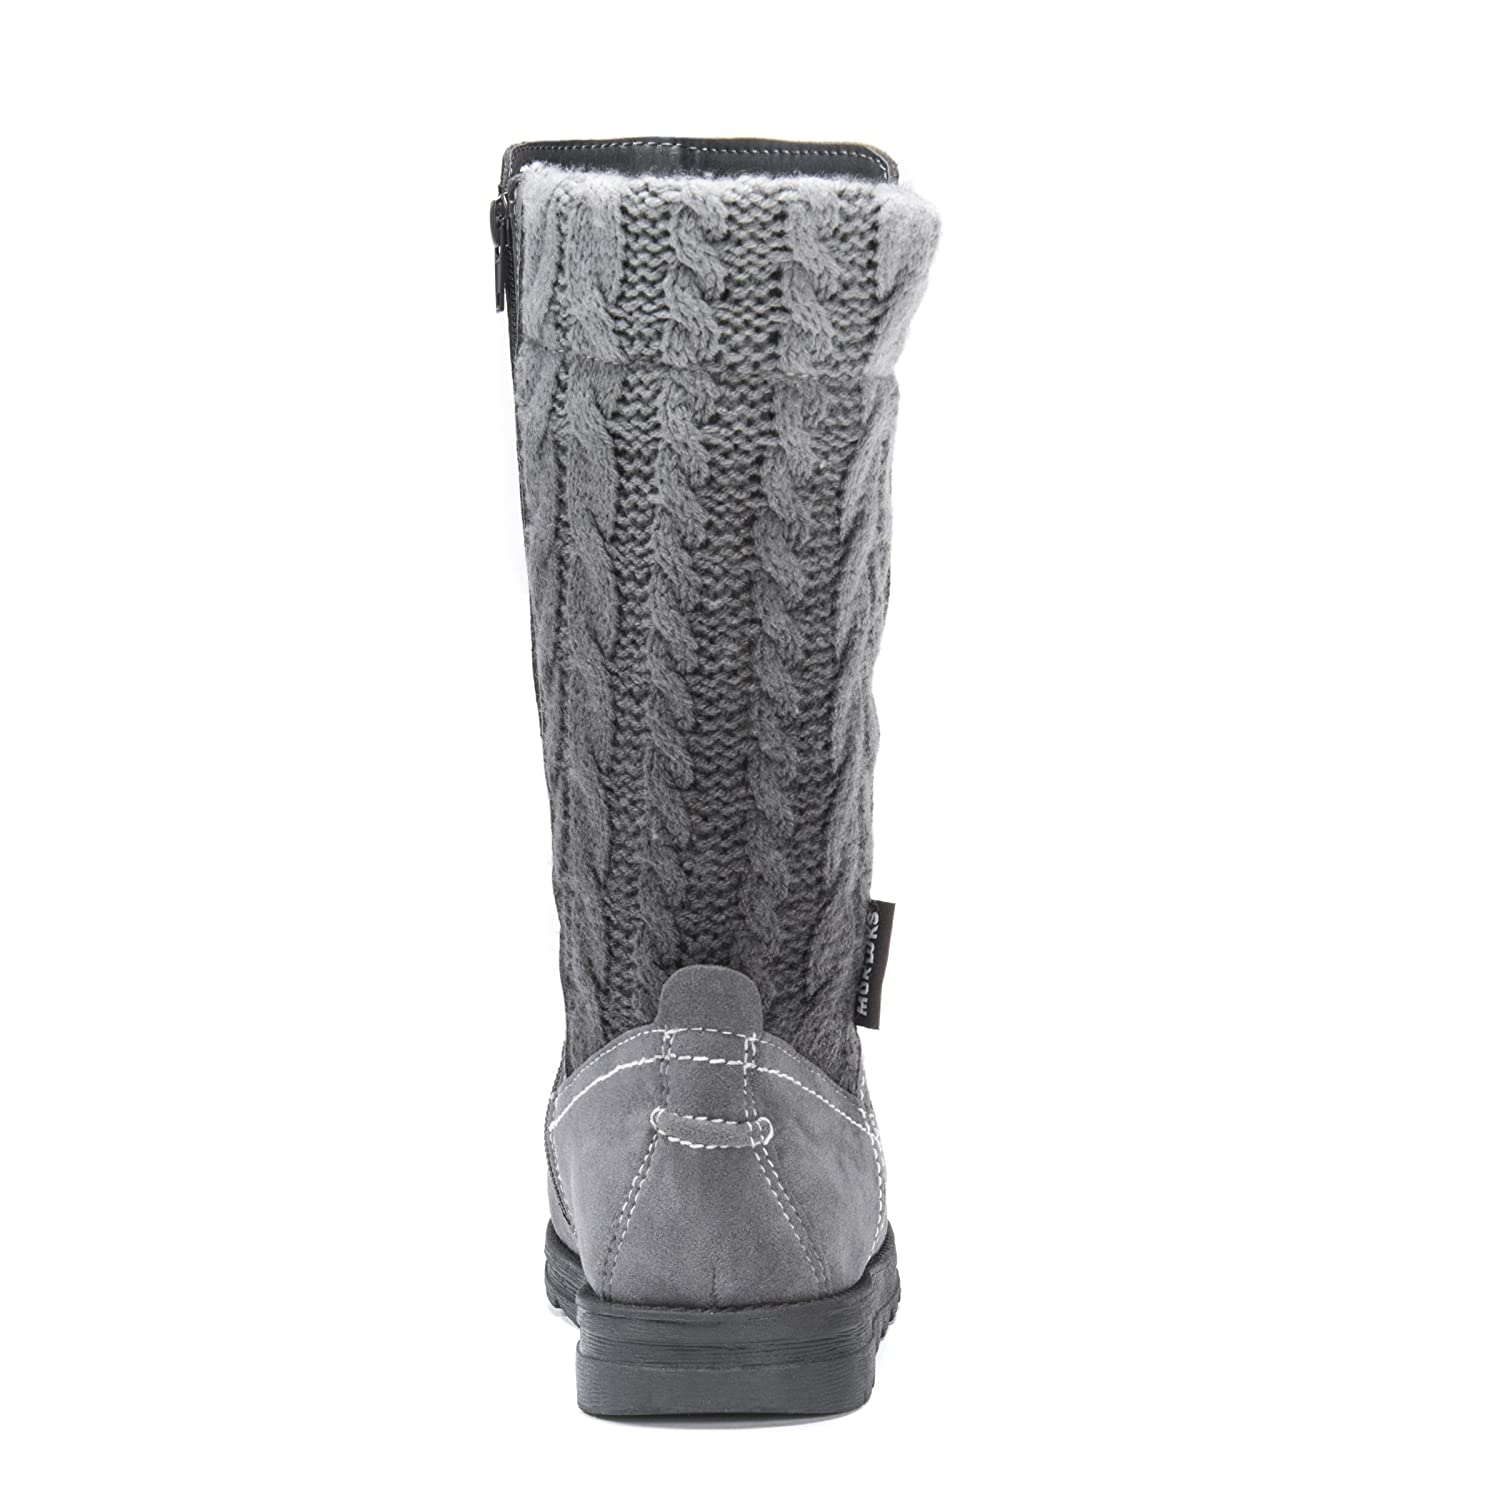 MUK LUKS Women's Stacy Fashion Boot B072K6R54K 7 B(M) US|Grey